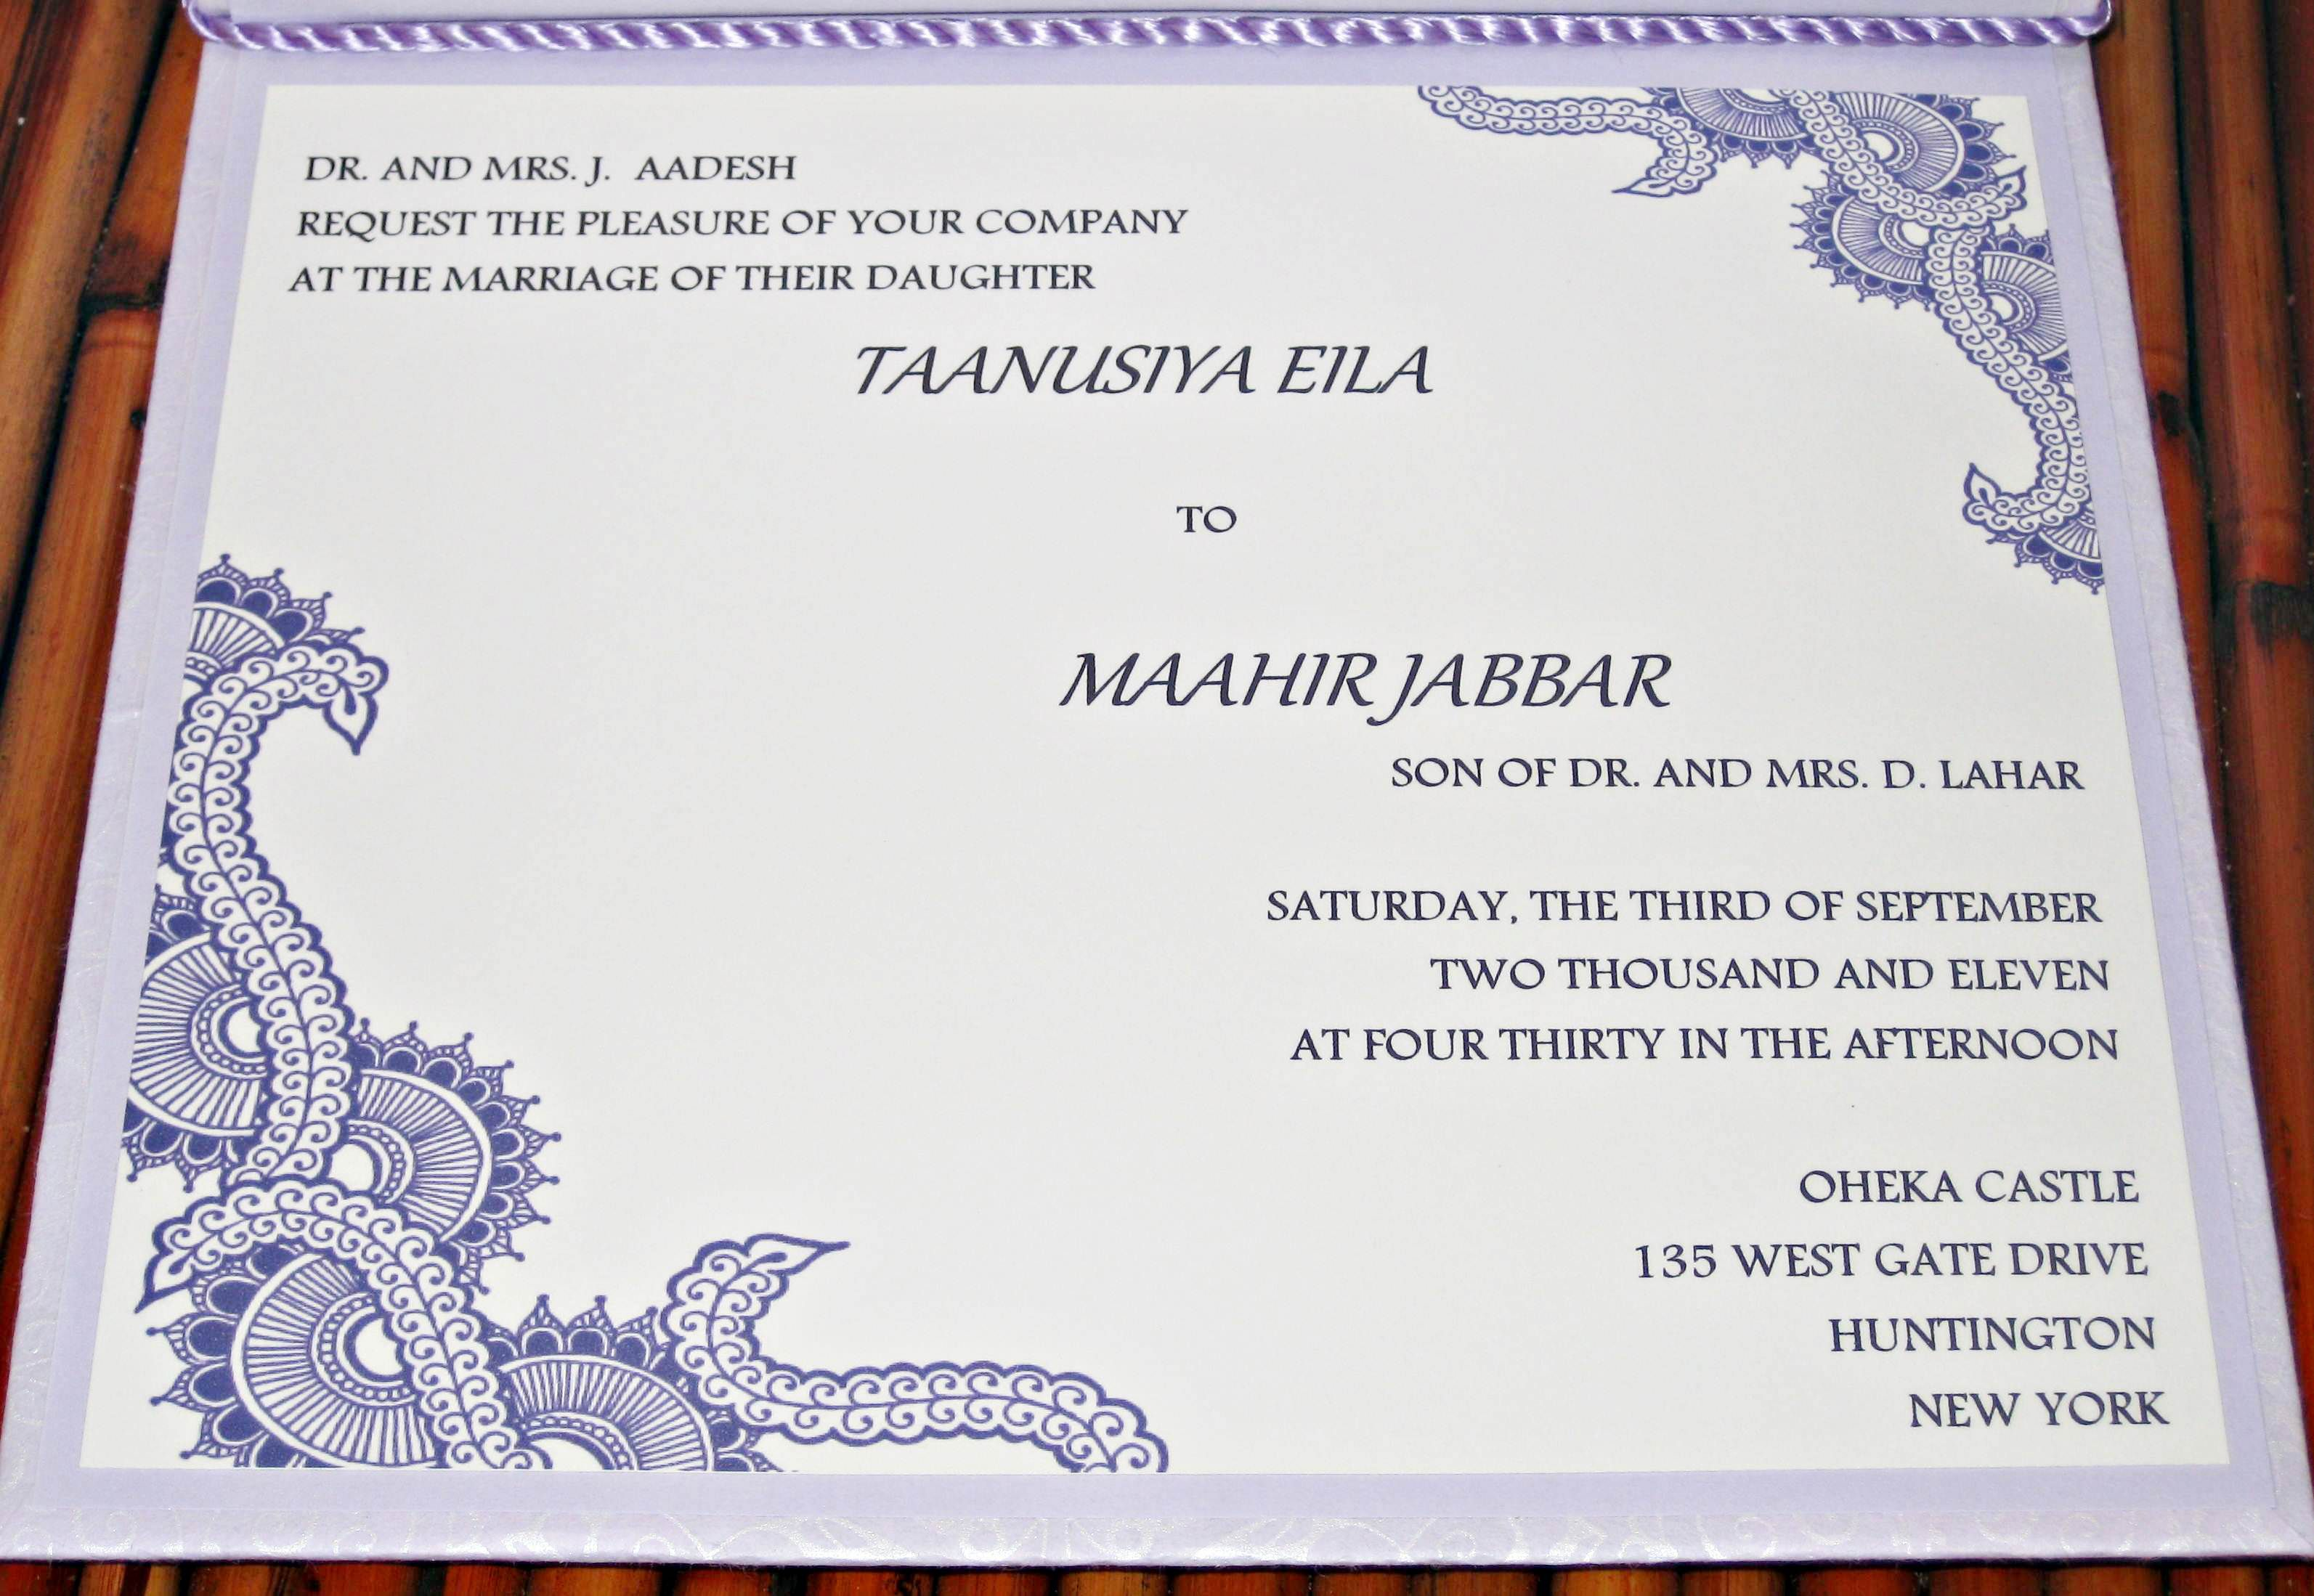 Samples Of Wedding Invitation Cards - Invitation Templates ...